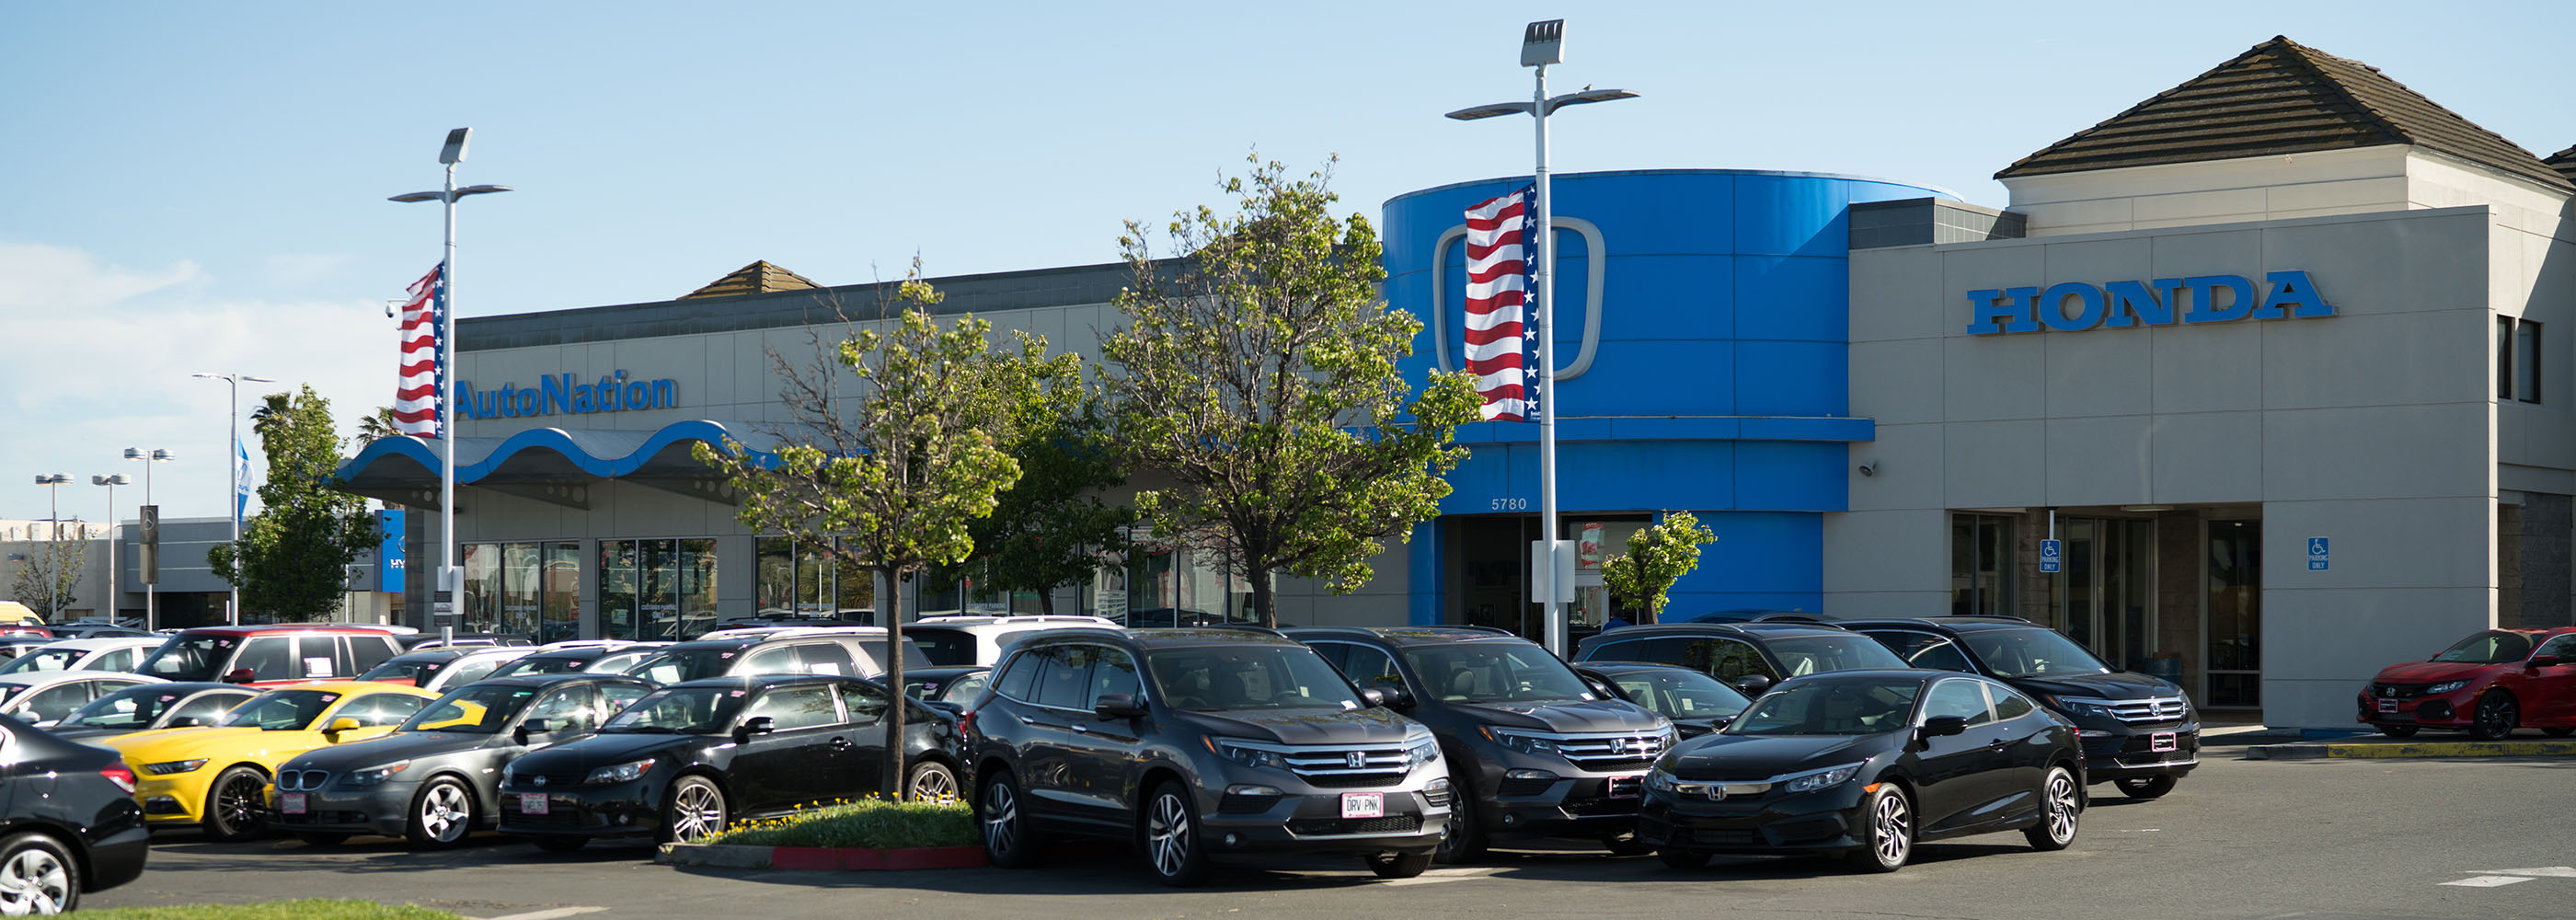 Outside view of AutoNation Honda Fremont